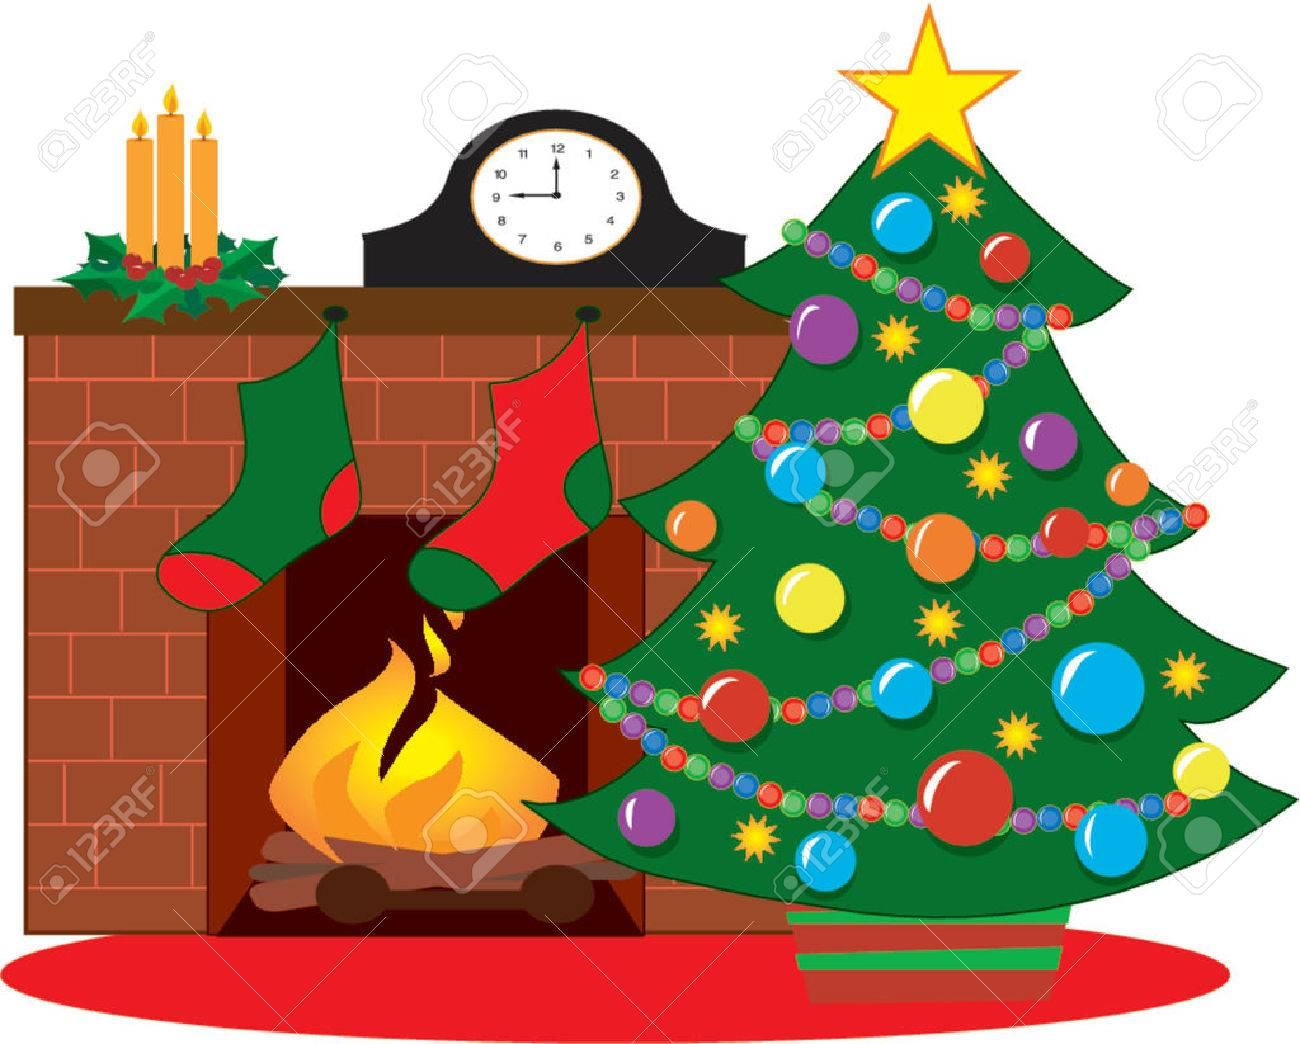 image collection christmas fireplace ornament with stockings all